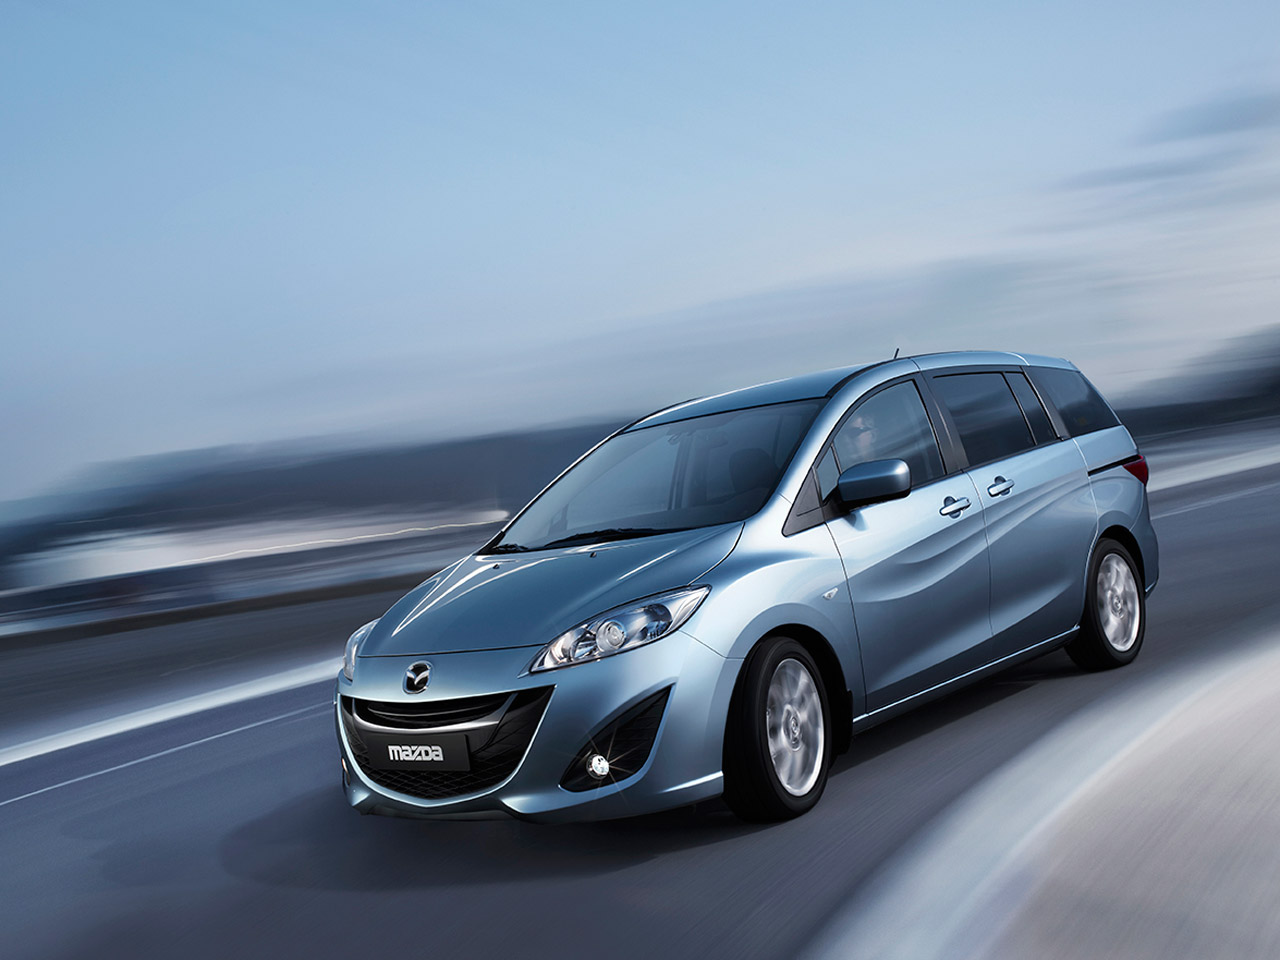 mazda 5 premacy specs photos 2010 2011 2012 2013. Black Bedroom Furniture Sets. Home Design Ideas